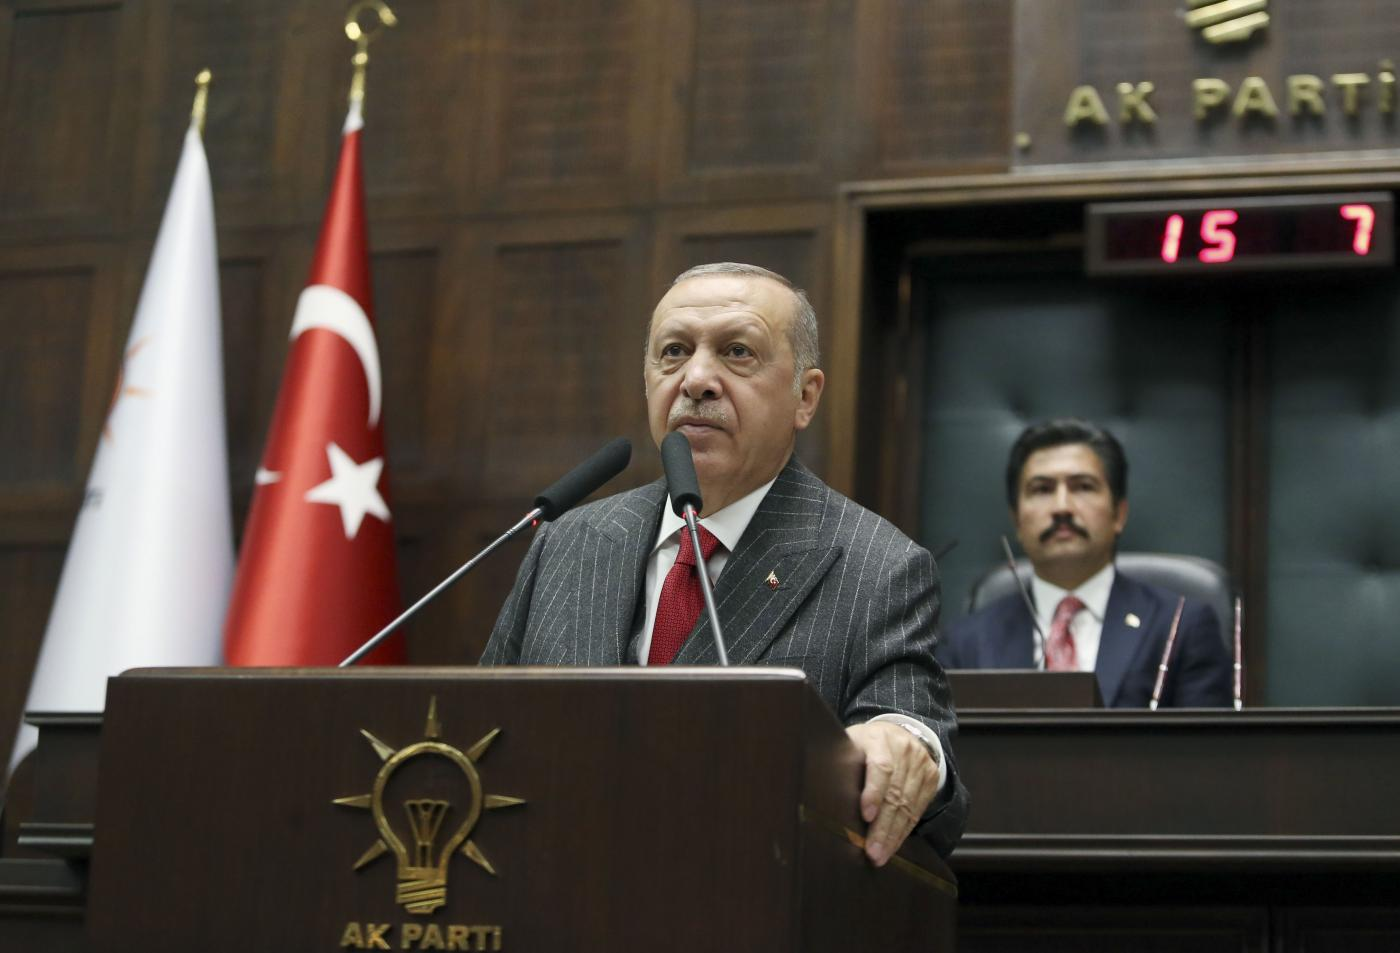 ANKARA, May 7, 2019 (Xinhua) -- Turkish President Recep Tayyip Erdogan (front) speaks to members of his ruling Justice and Development Party (AKP) during their parliamentary group meeting in Ankara, Turkey, on May 7, 2019. (Xinhua/Mustafa Kaya/IANS) by Mustafa Kaya.